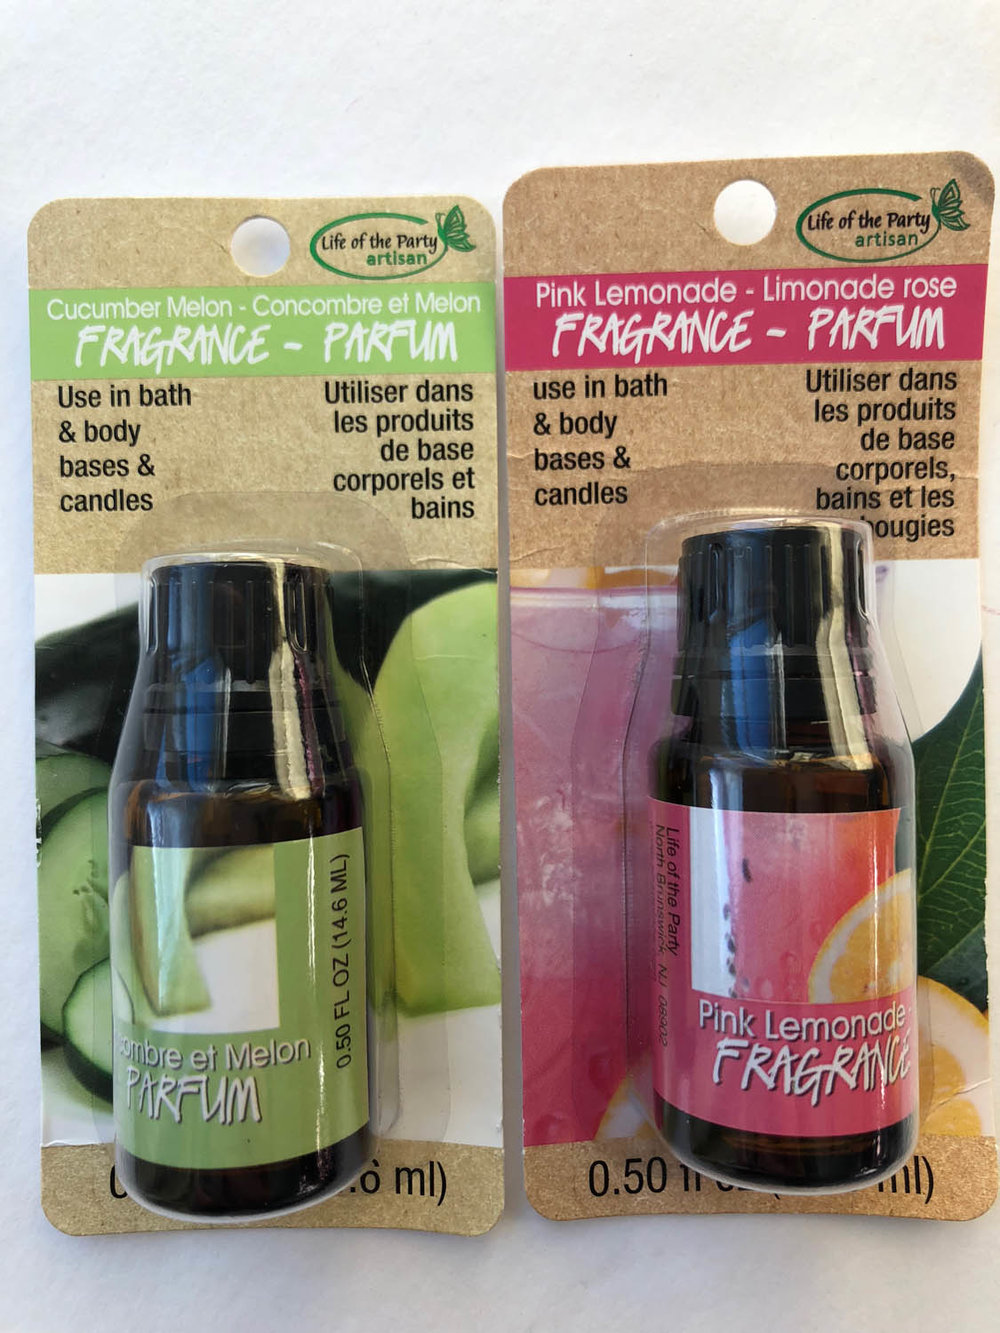 Life of the Party cucumber melon and pink lemonade fragrances